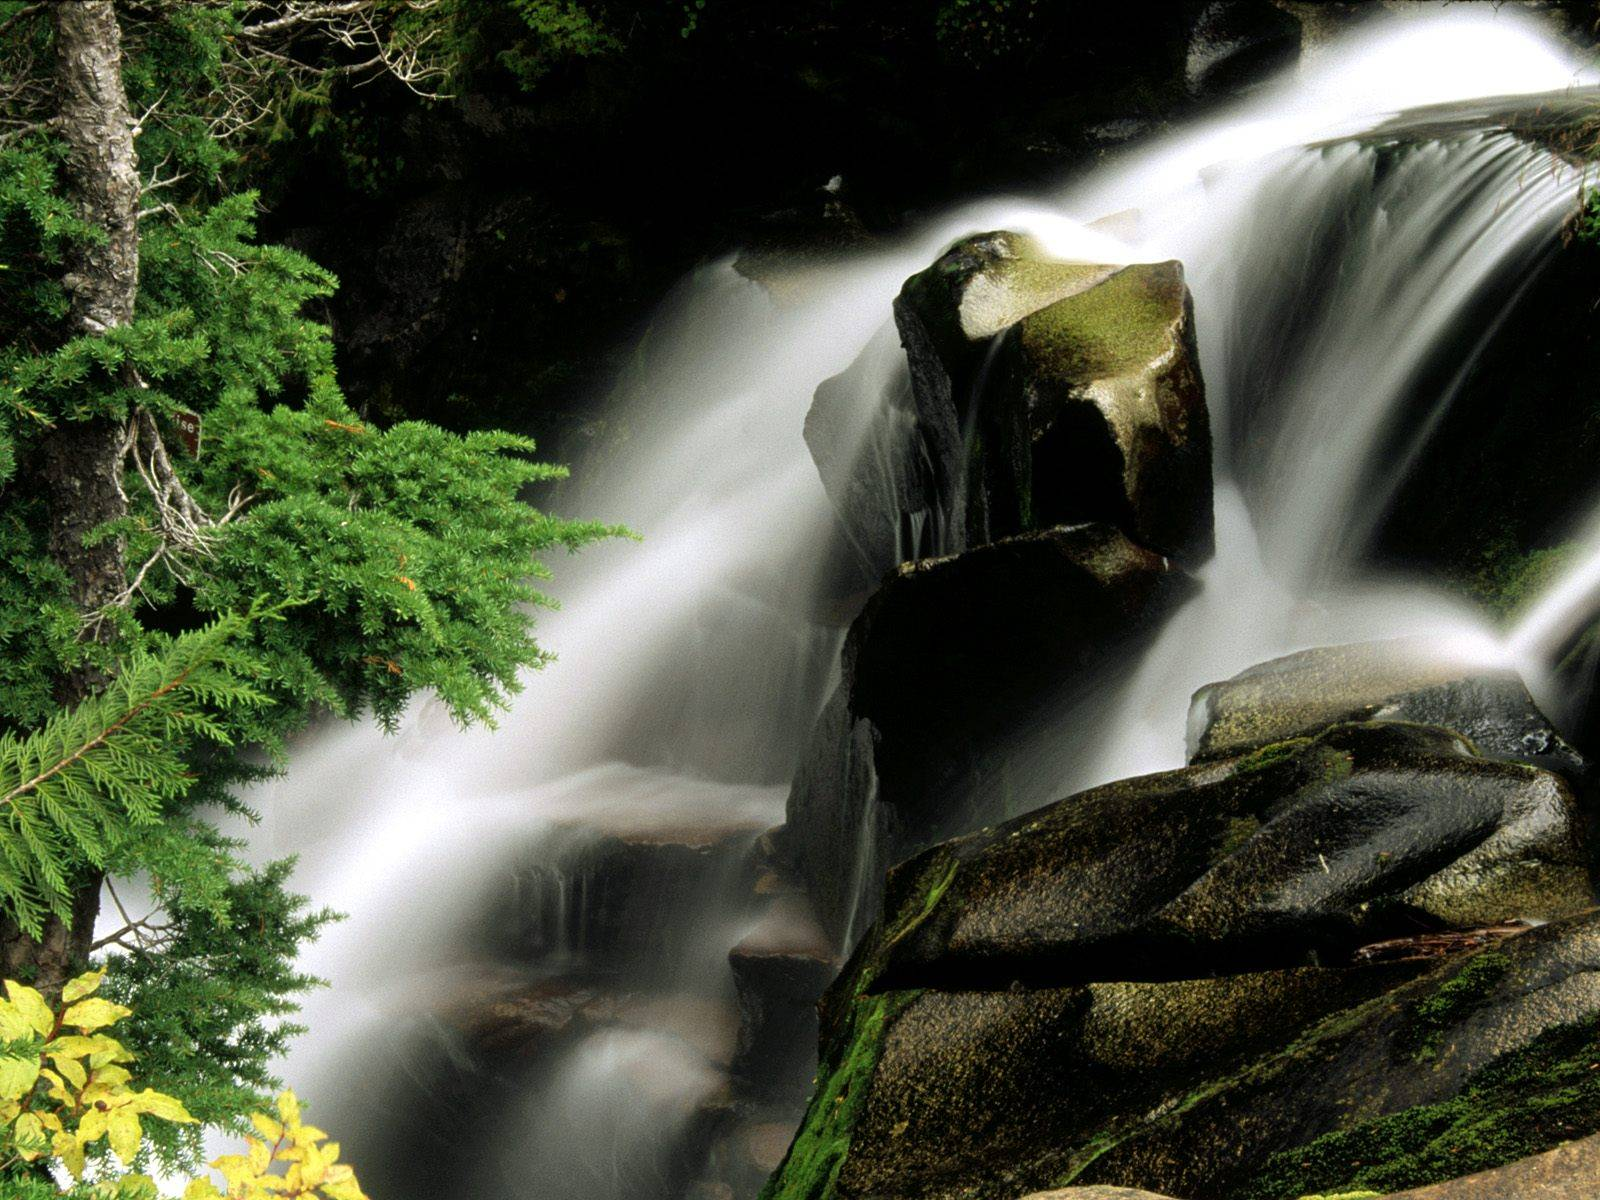 http://grandcanyon.free.fr/images/cascade/original/Paradise%20River%20Waterfall,%20Washington.jpg